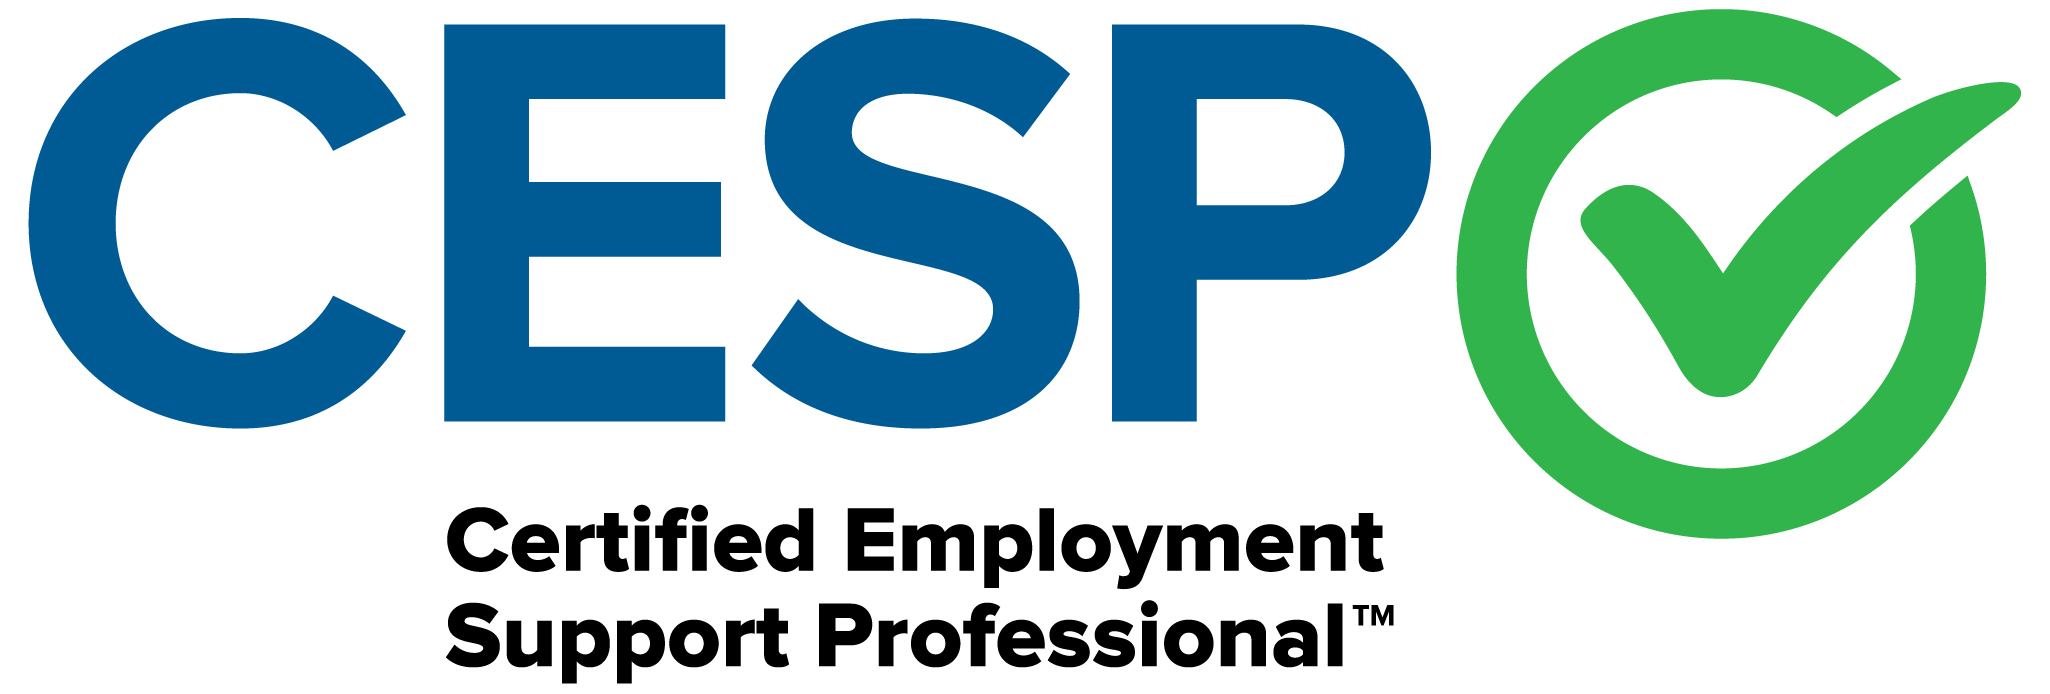 Certified Employment Support Professional